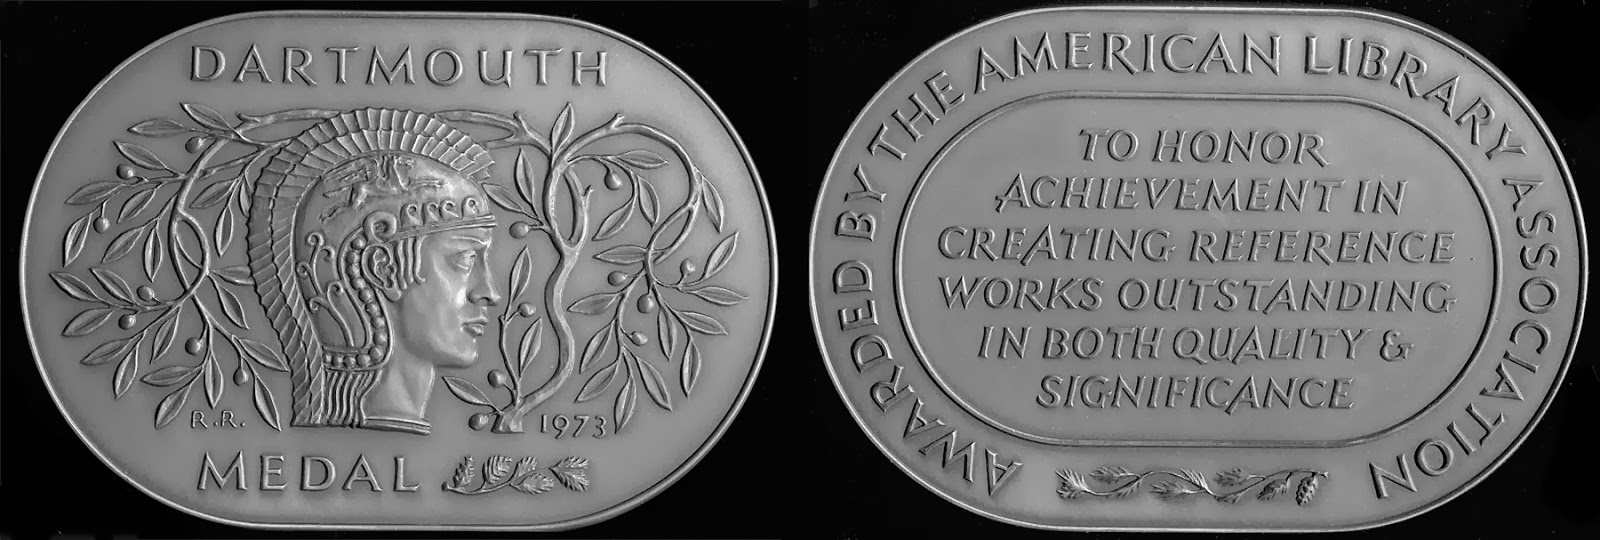 The front and back of The Dartmouth Medal.